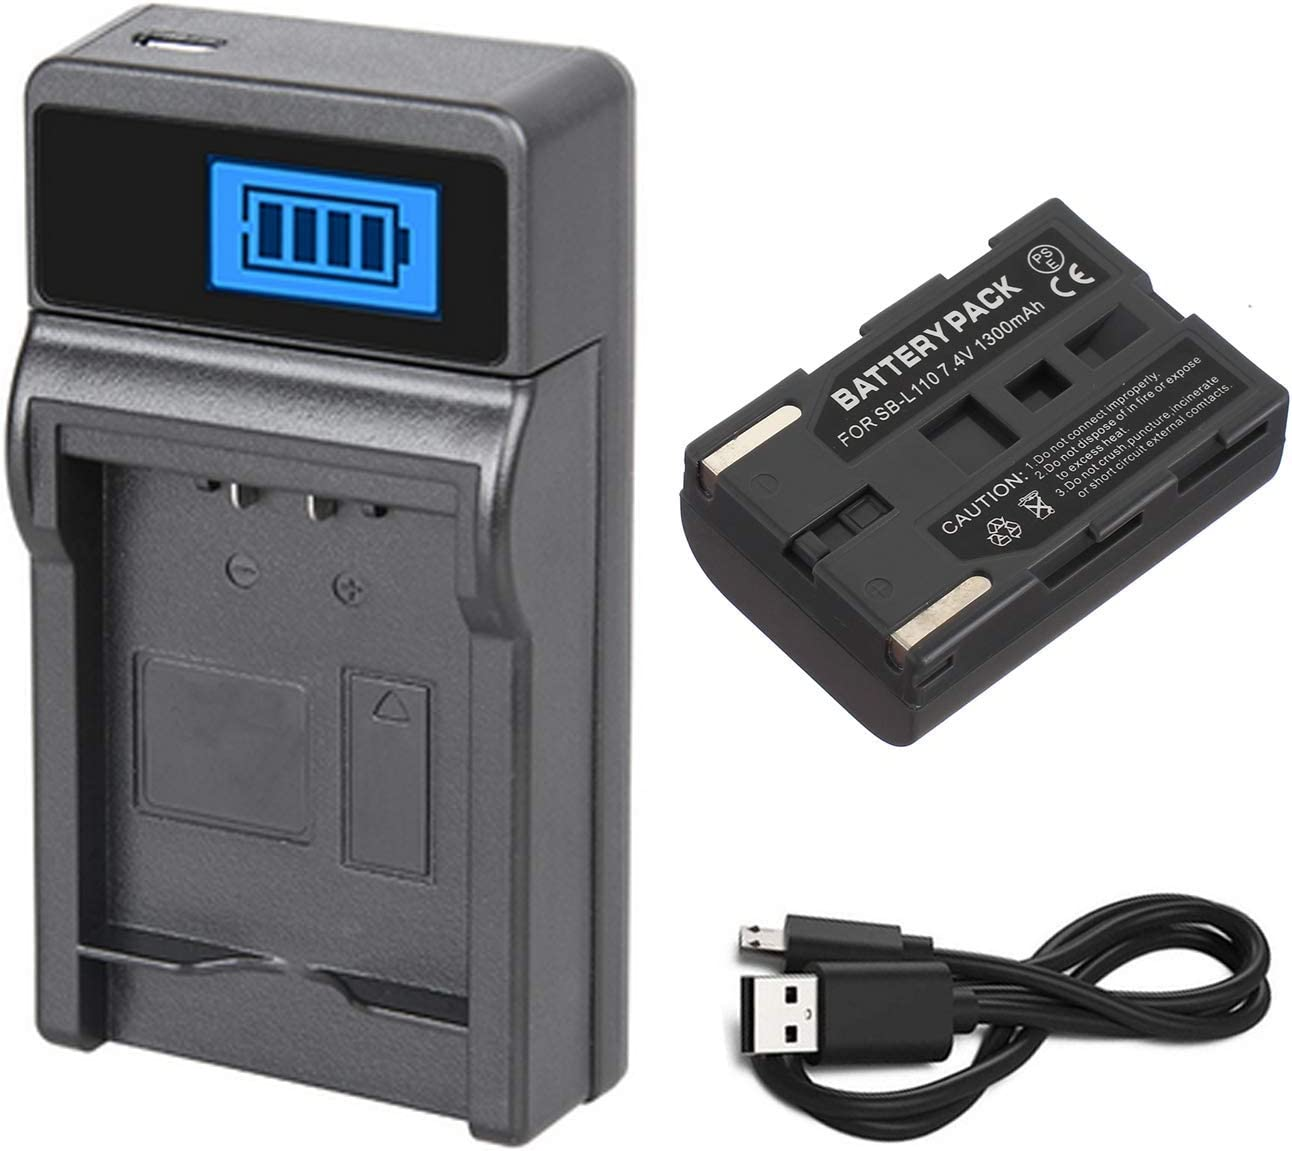 SC-D71 SC-D75 Charger for Samsung SC-D70 SC-D73 SC-D77 Digital Video Camcorder Battery Pack